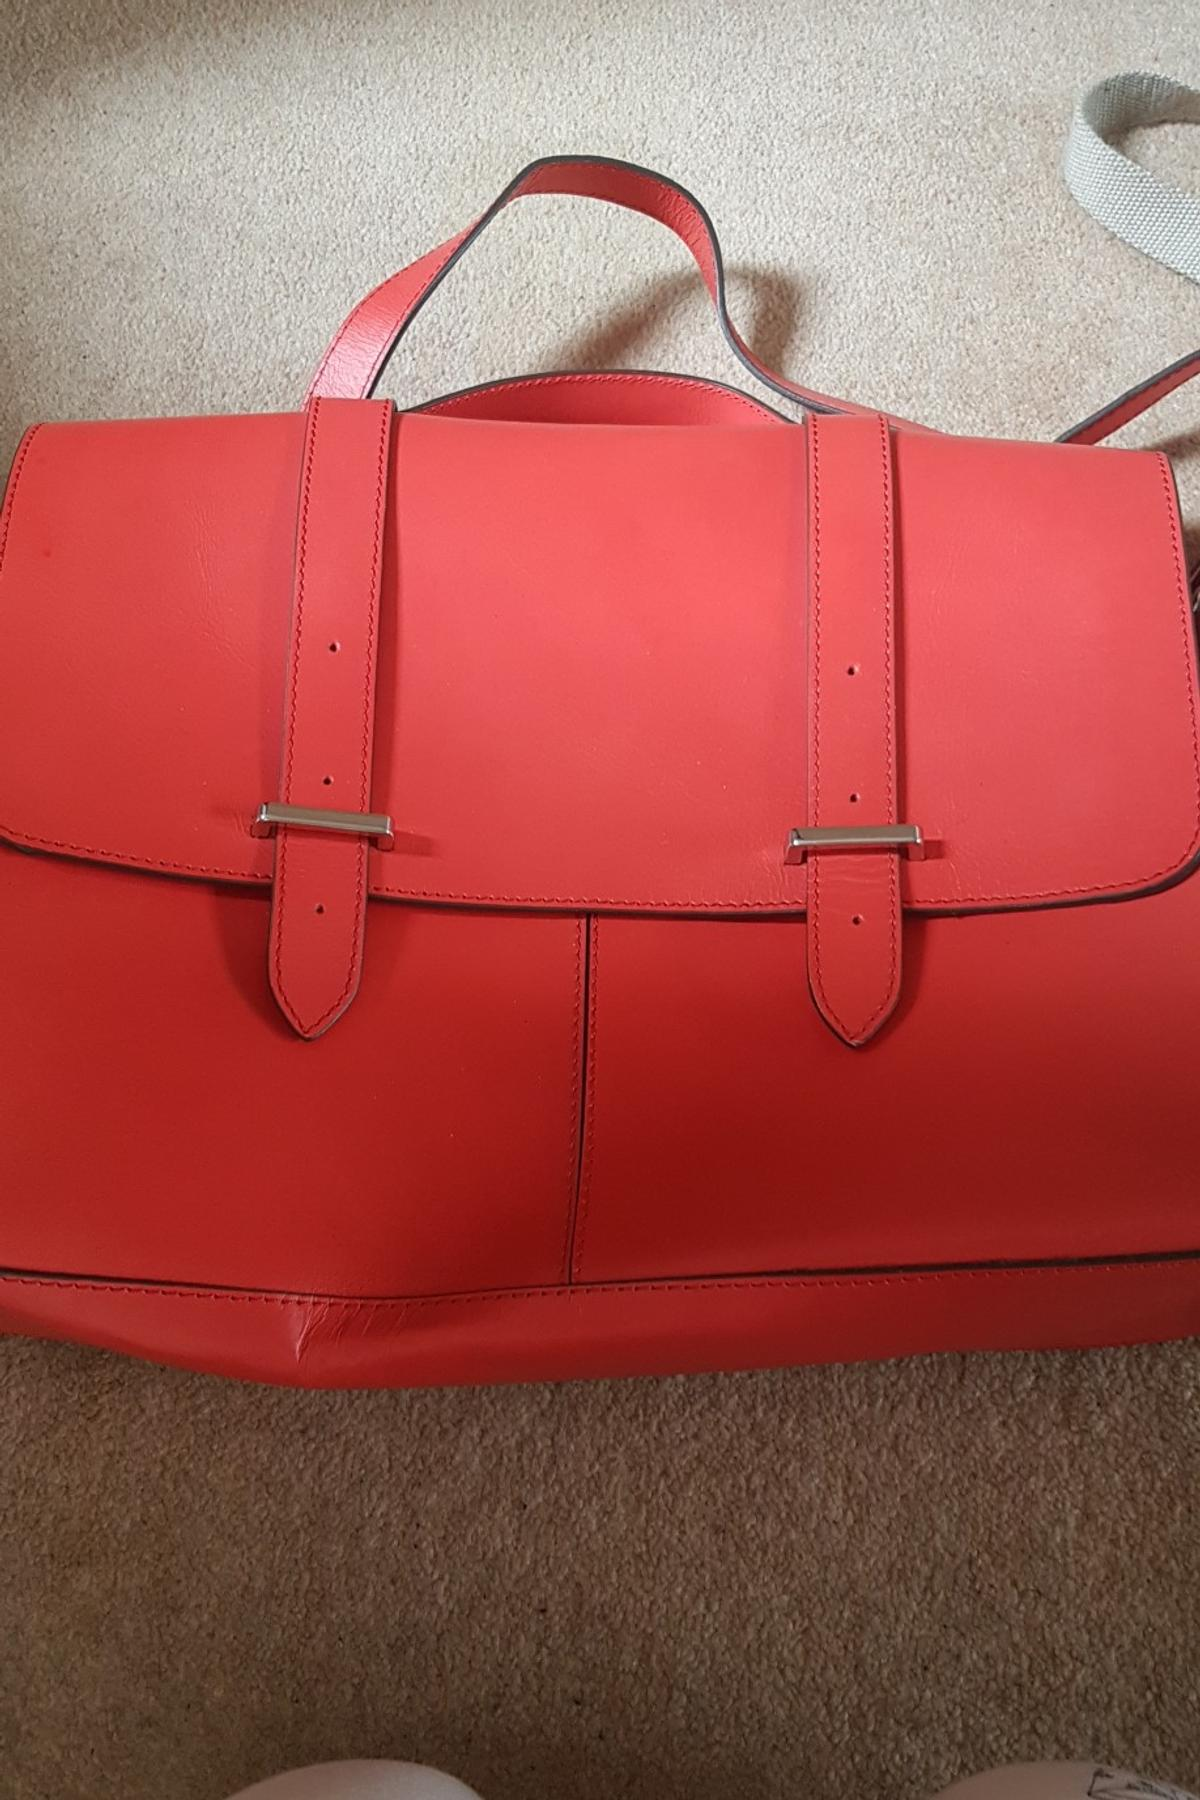 2f37aa97479 Clarks leather satchel in HD2 Kirklees for £10.00 for sale - Shpock